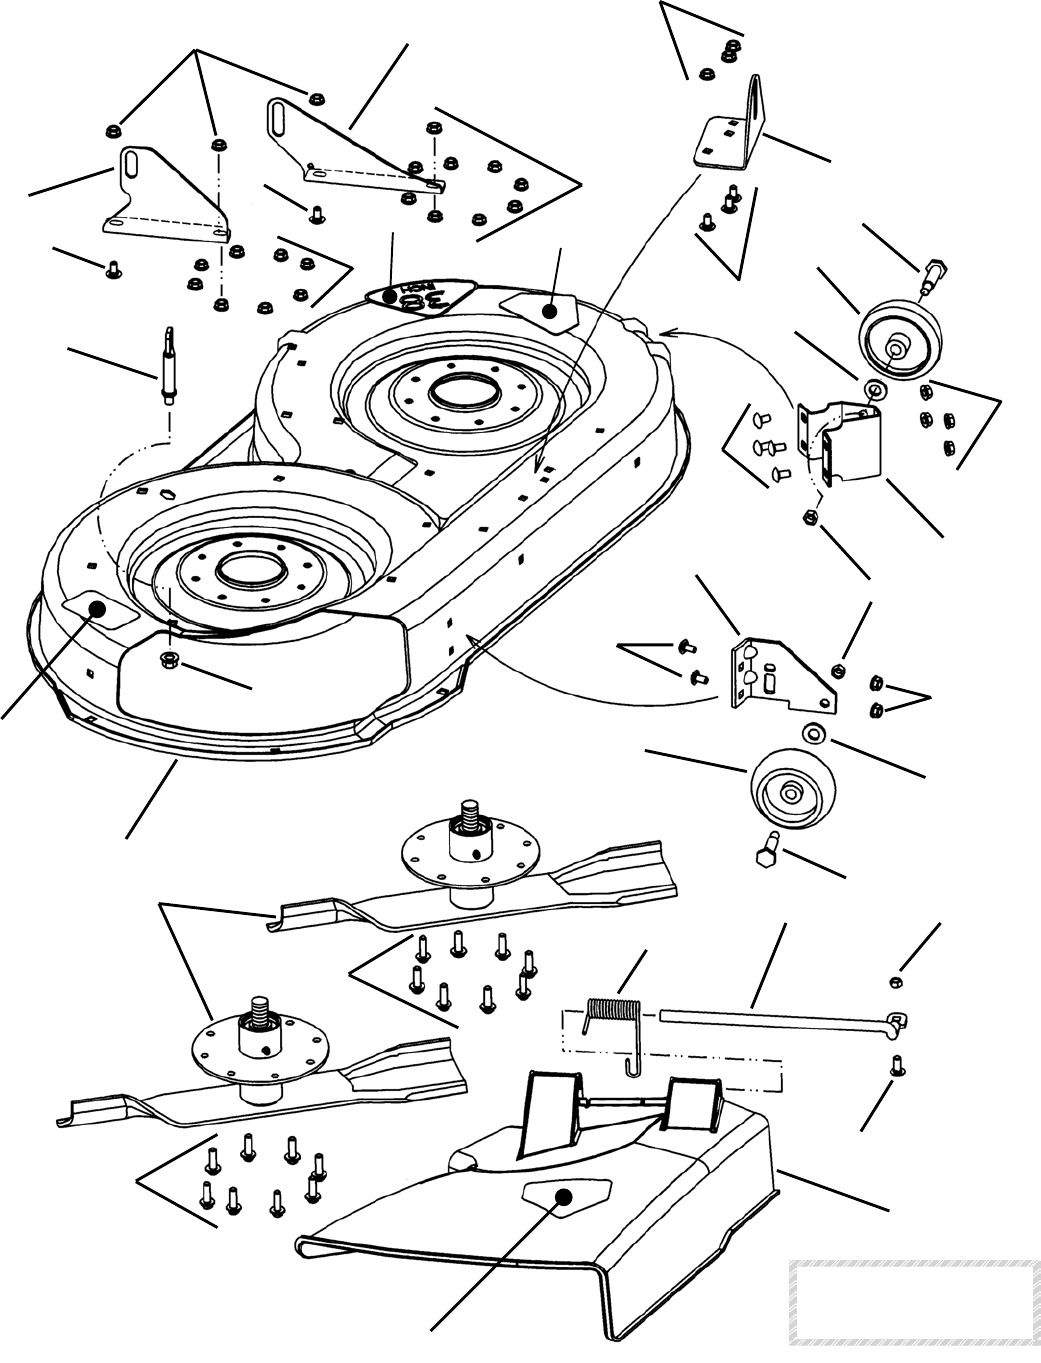 Page 24 of Snapper Lawn Mower 381450HBVE User Guide